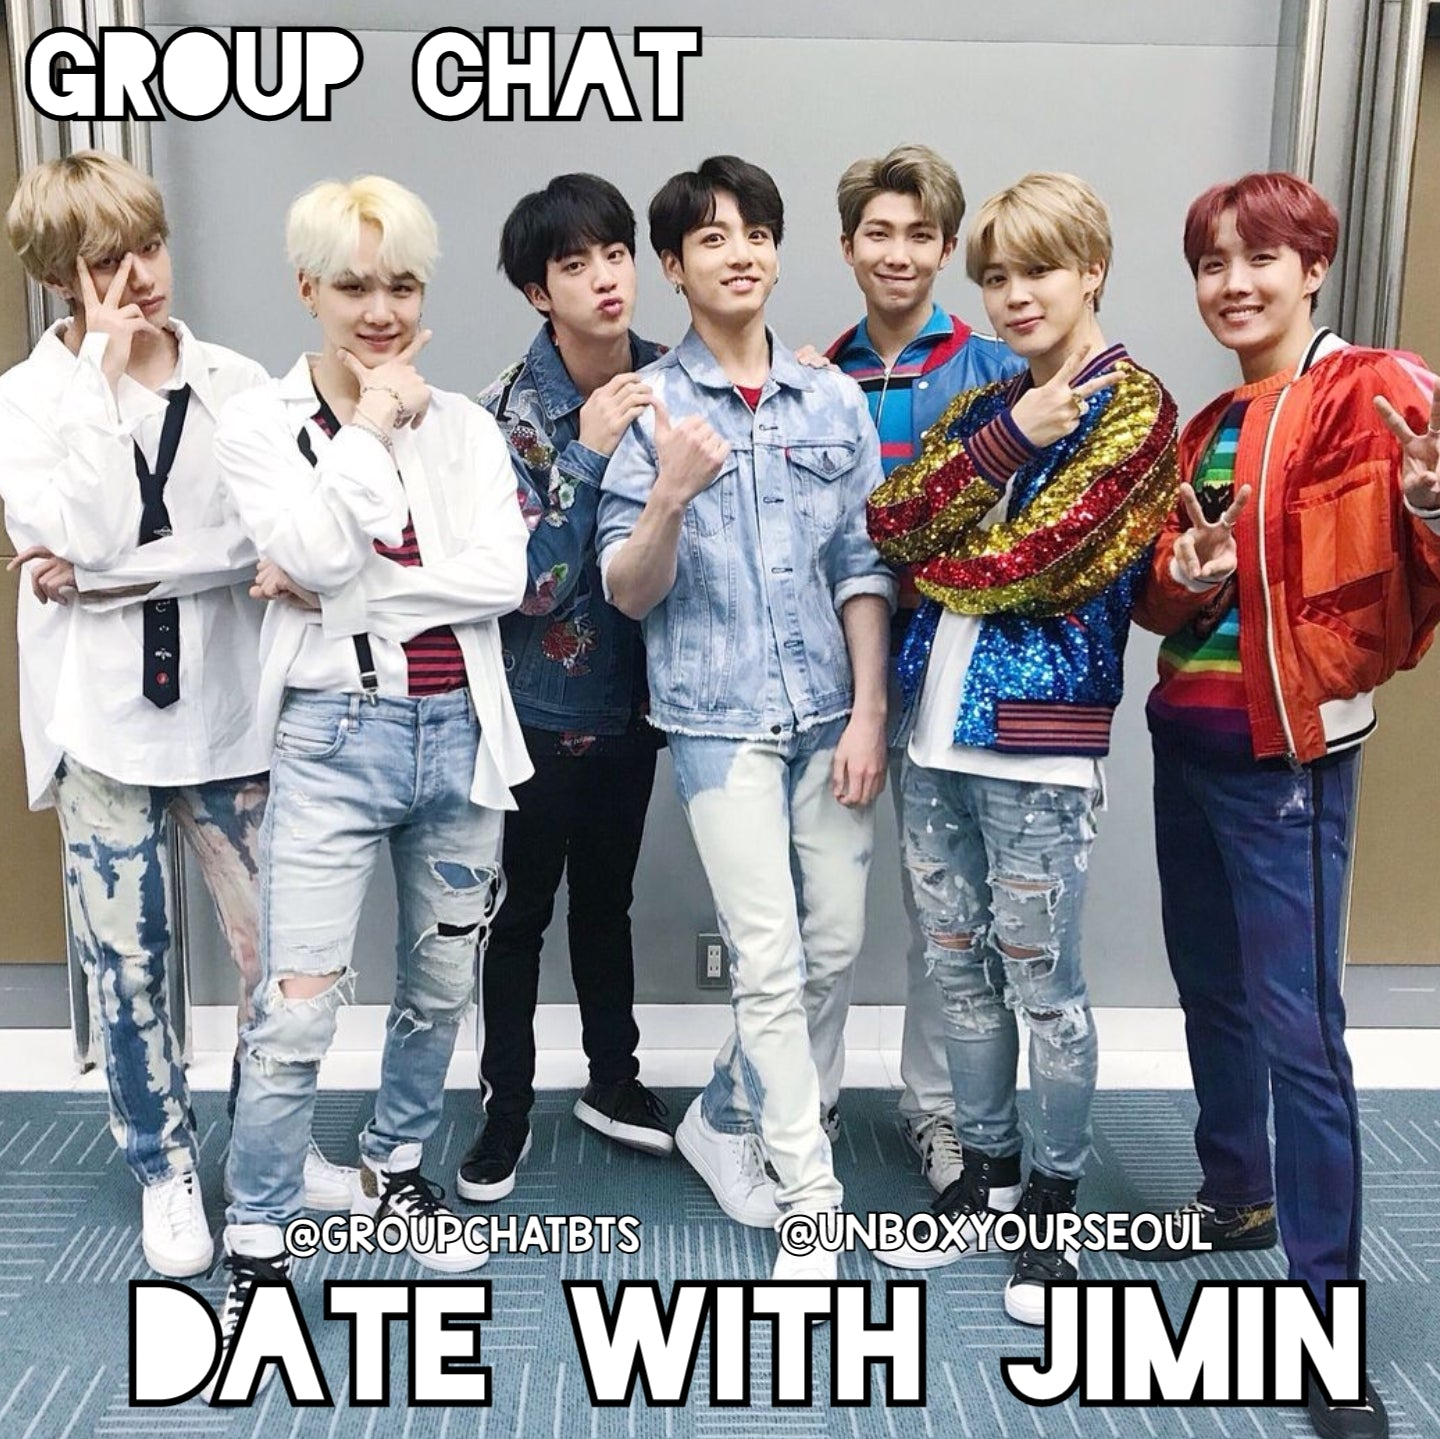 bts groupchat imagine fiction date with jimin